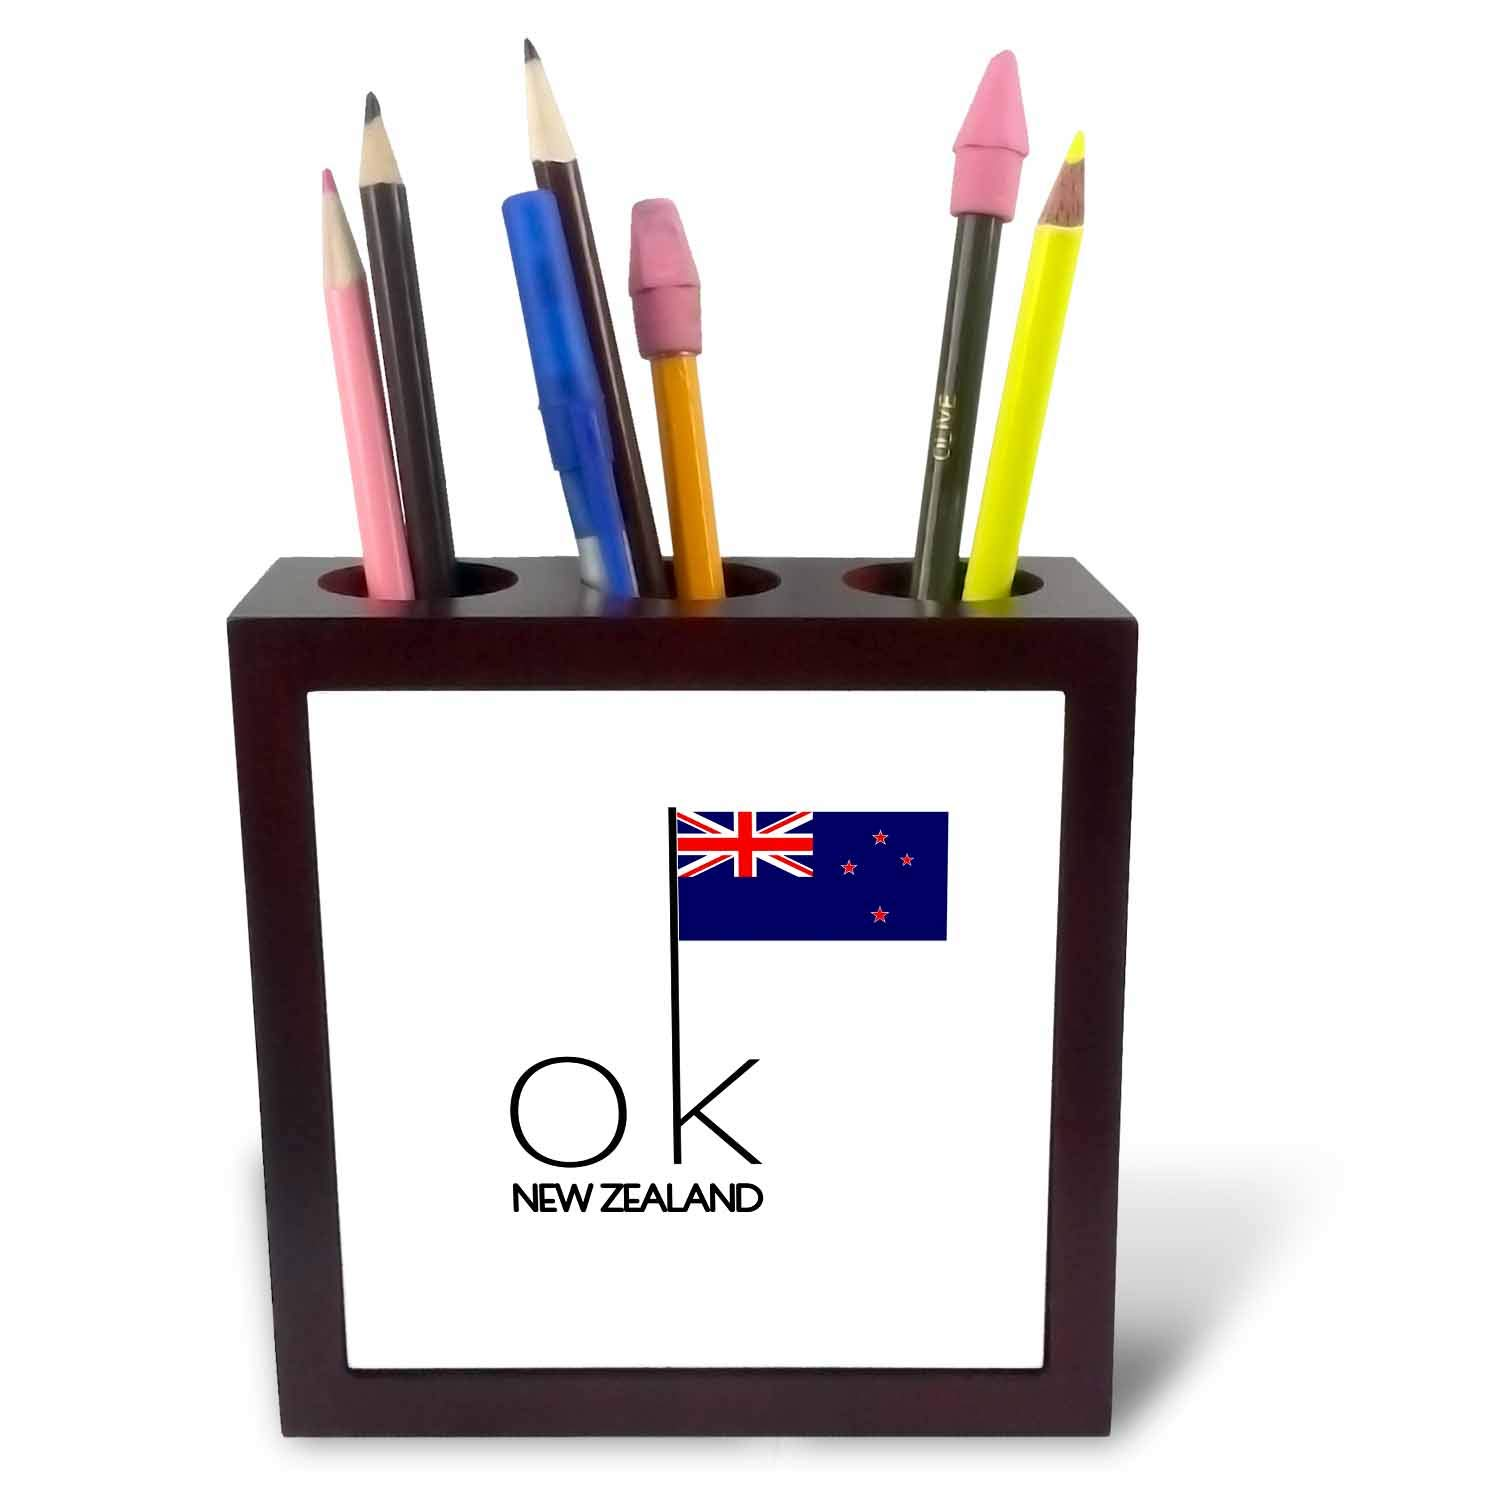 3dRose Alexis Design - OK Country - Stylish Text OK New Zealand and an Image of The Zelanian Flag - 5 inch Tile Pen Holder (ph_292339_1)